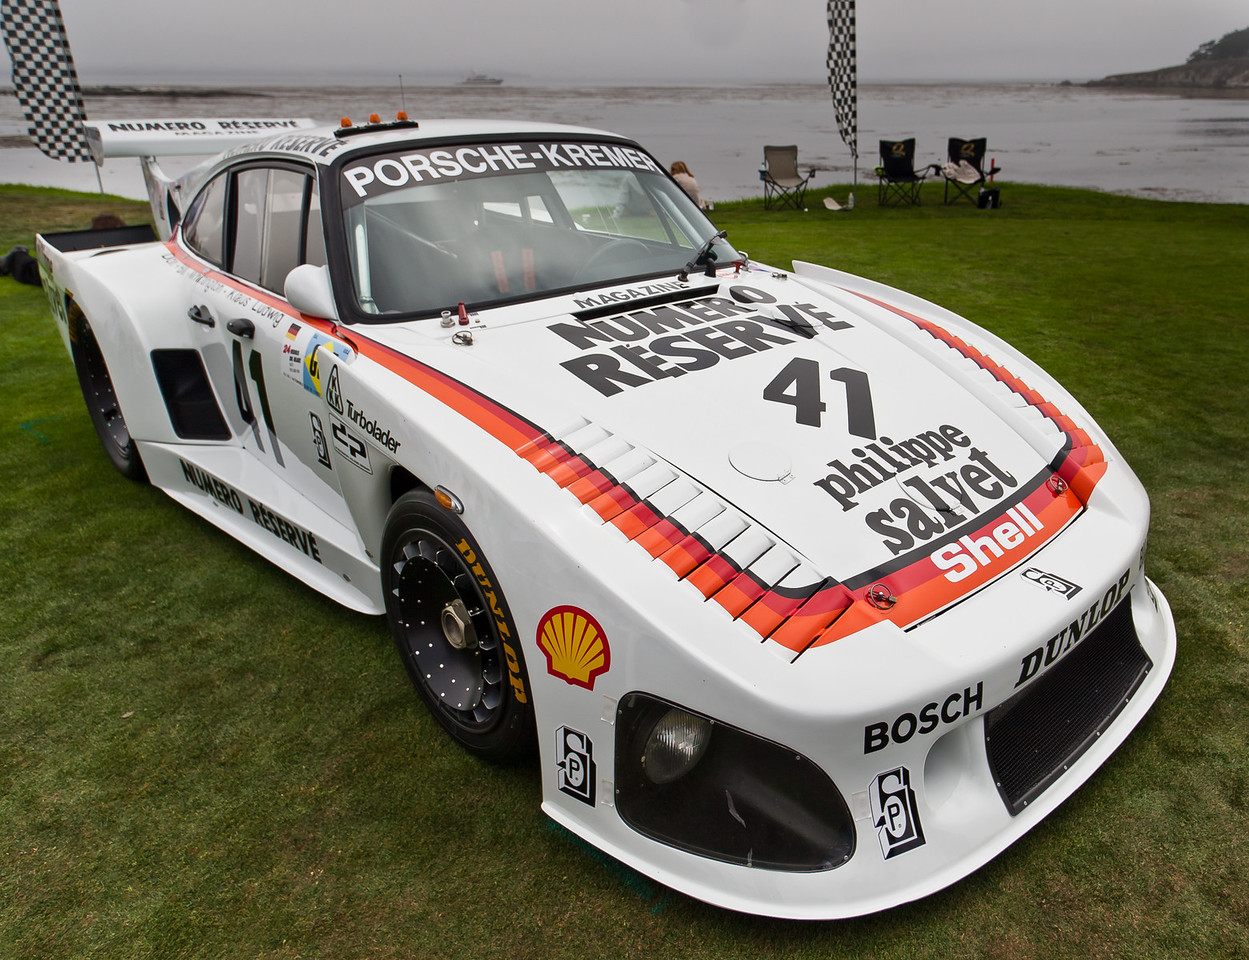 1979 Porsche 935 K3 --overall winner of 24 Hours of Le Mans in 1979 (Bruce Meyers collection)